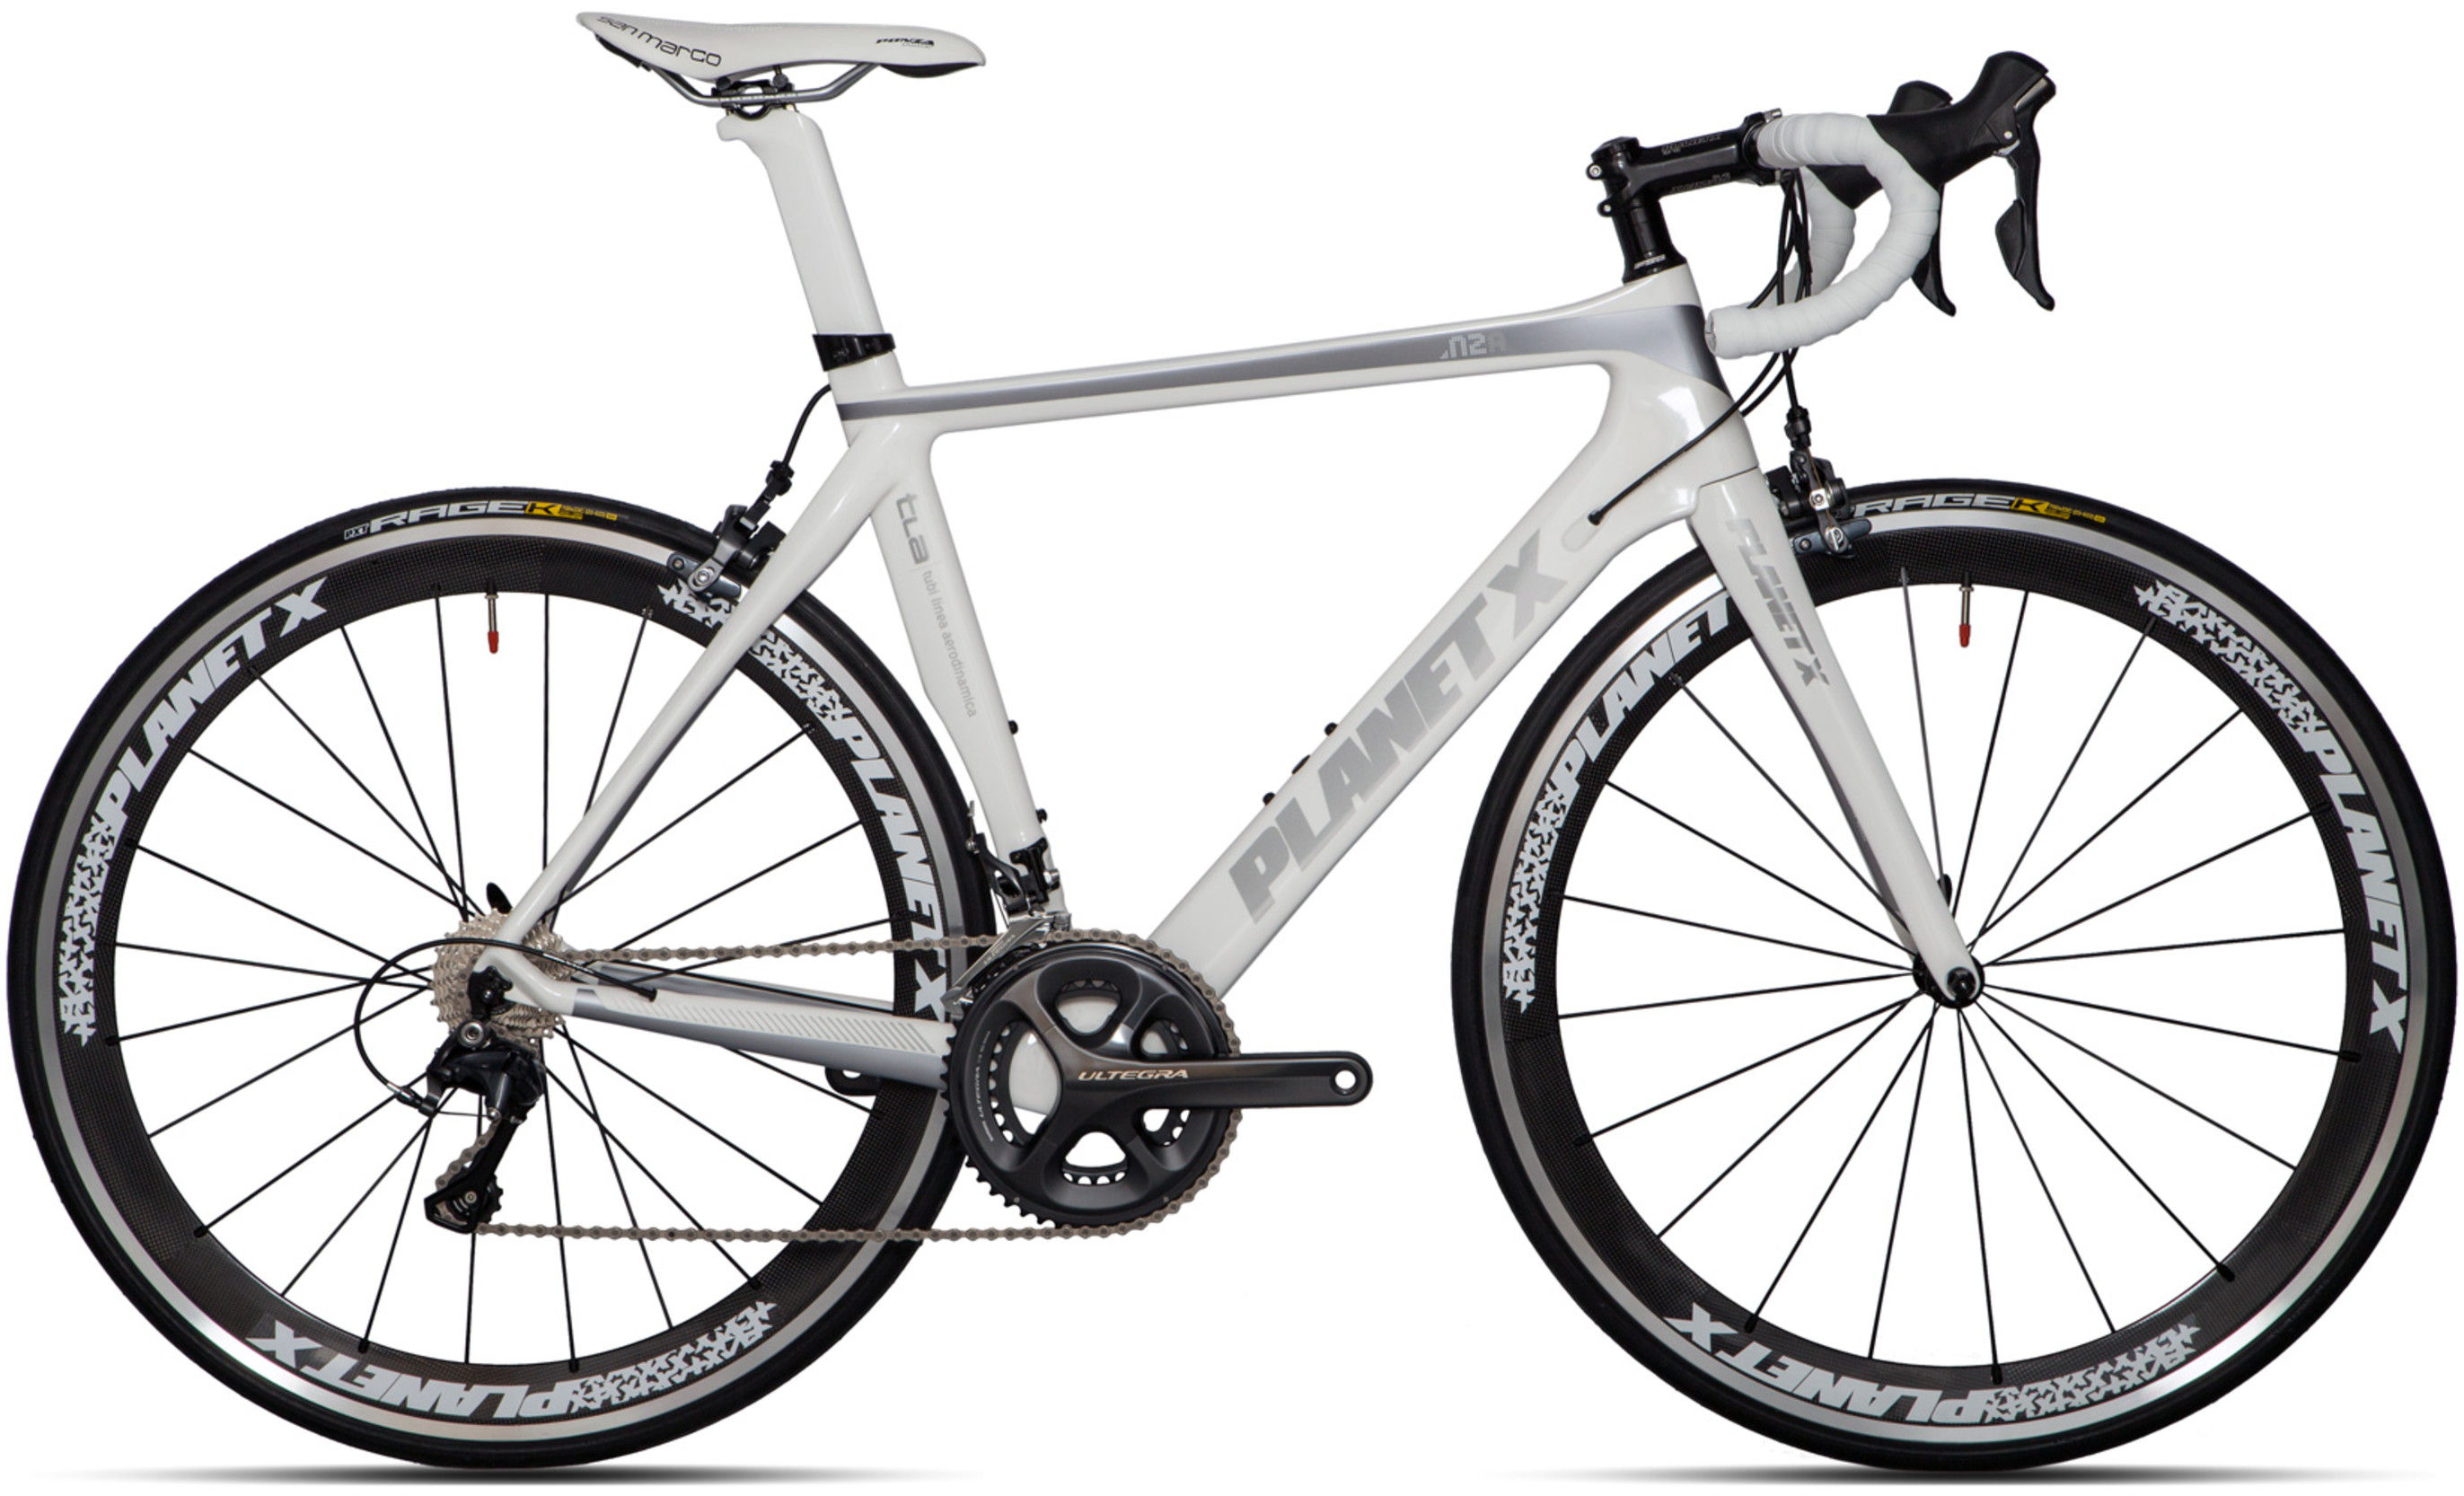 Planet X N2a Shimano Ultegra 6800 Carbon 2014 Review The Bike List